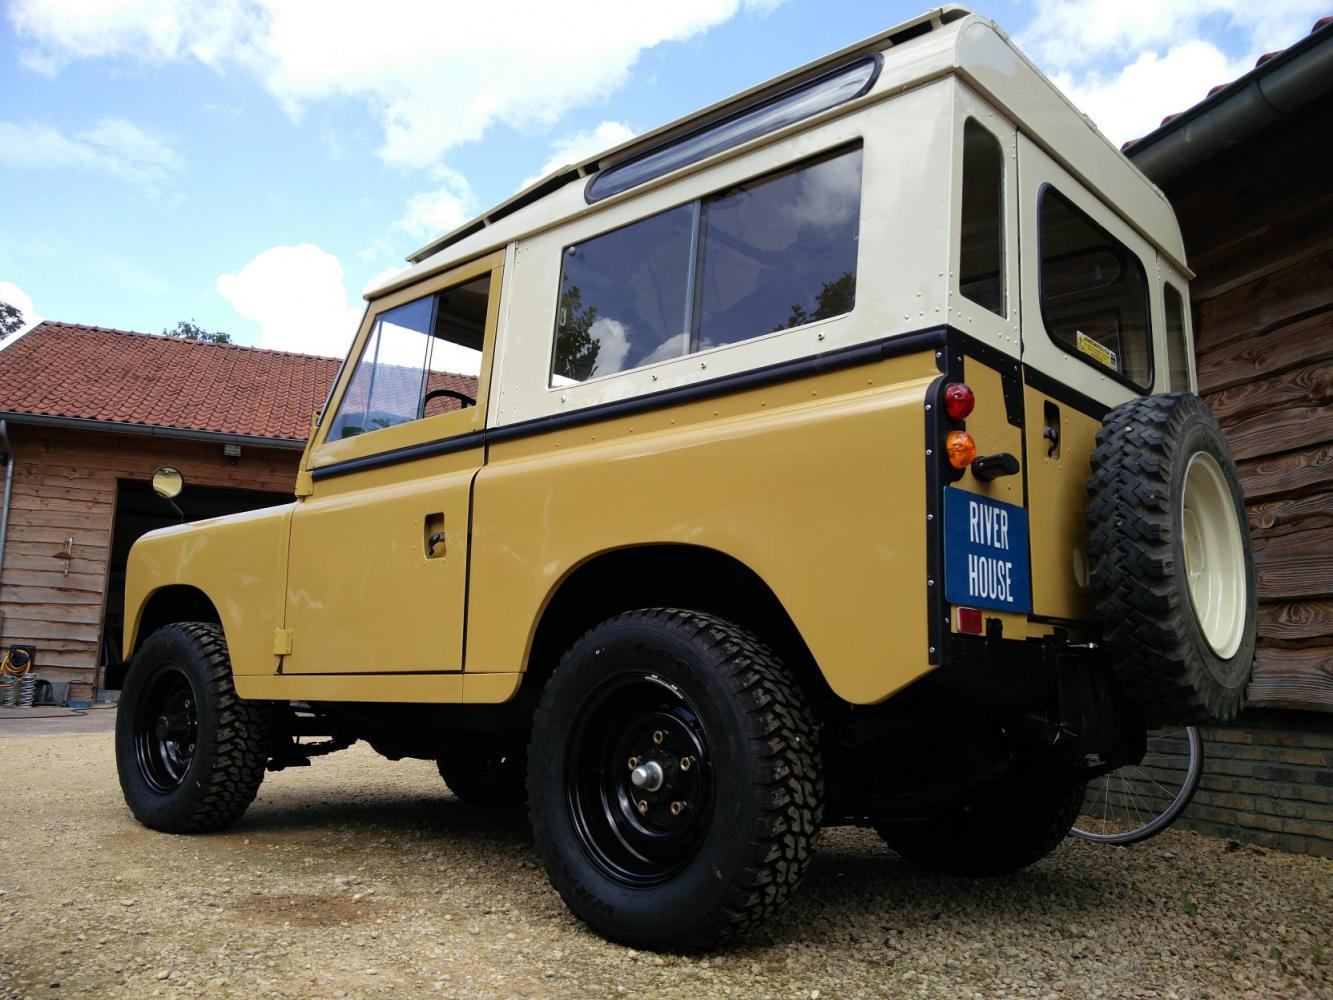 Click image for larger version  Name:1978 LR LHD Santana 88 Hardtop A Mustard Yellow left rear low.jpg Views:167 Size:174.4 KB ID:289889